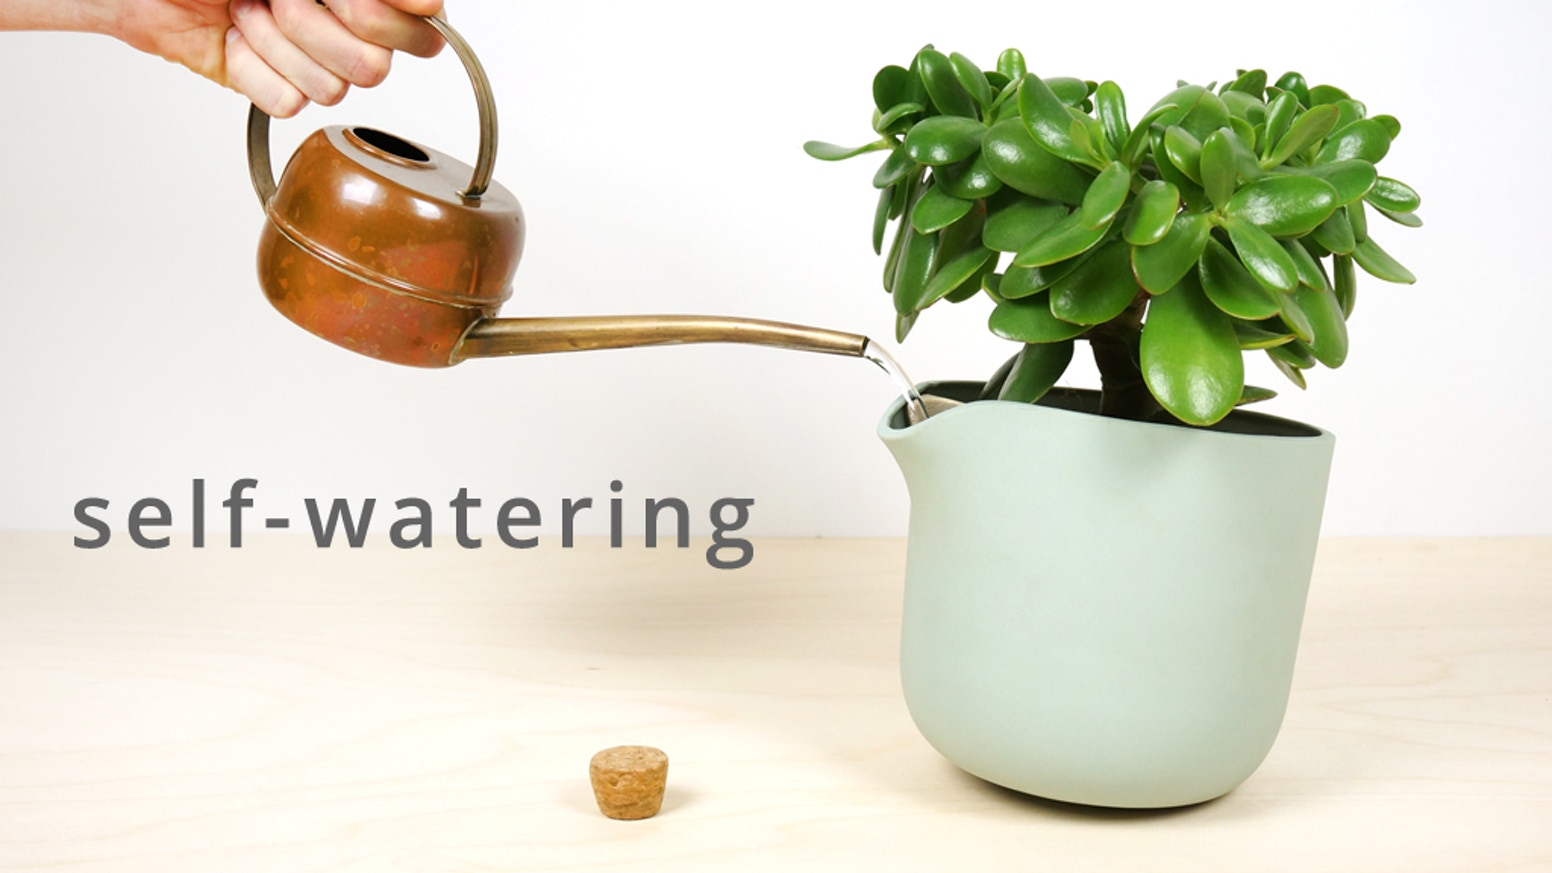 The perfect self-watering flowerpot, which tips over when a refill is needed. Carefully handcrafted ceramics, made in the Netherlands.